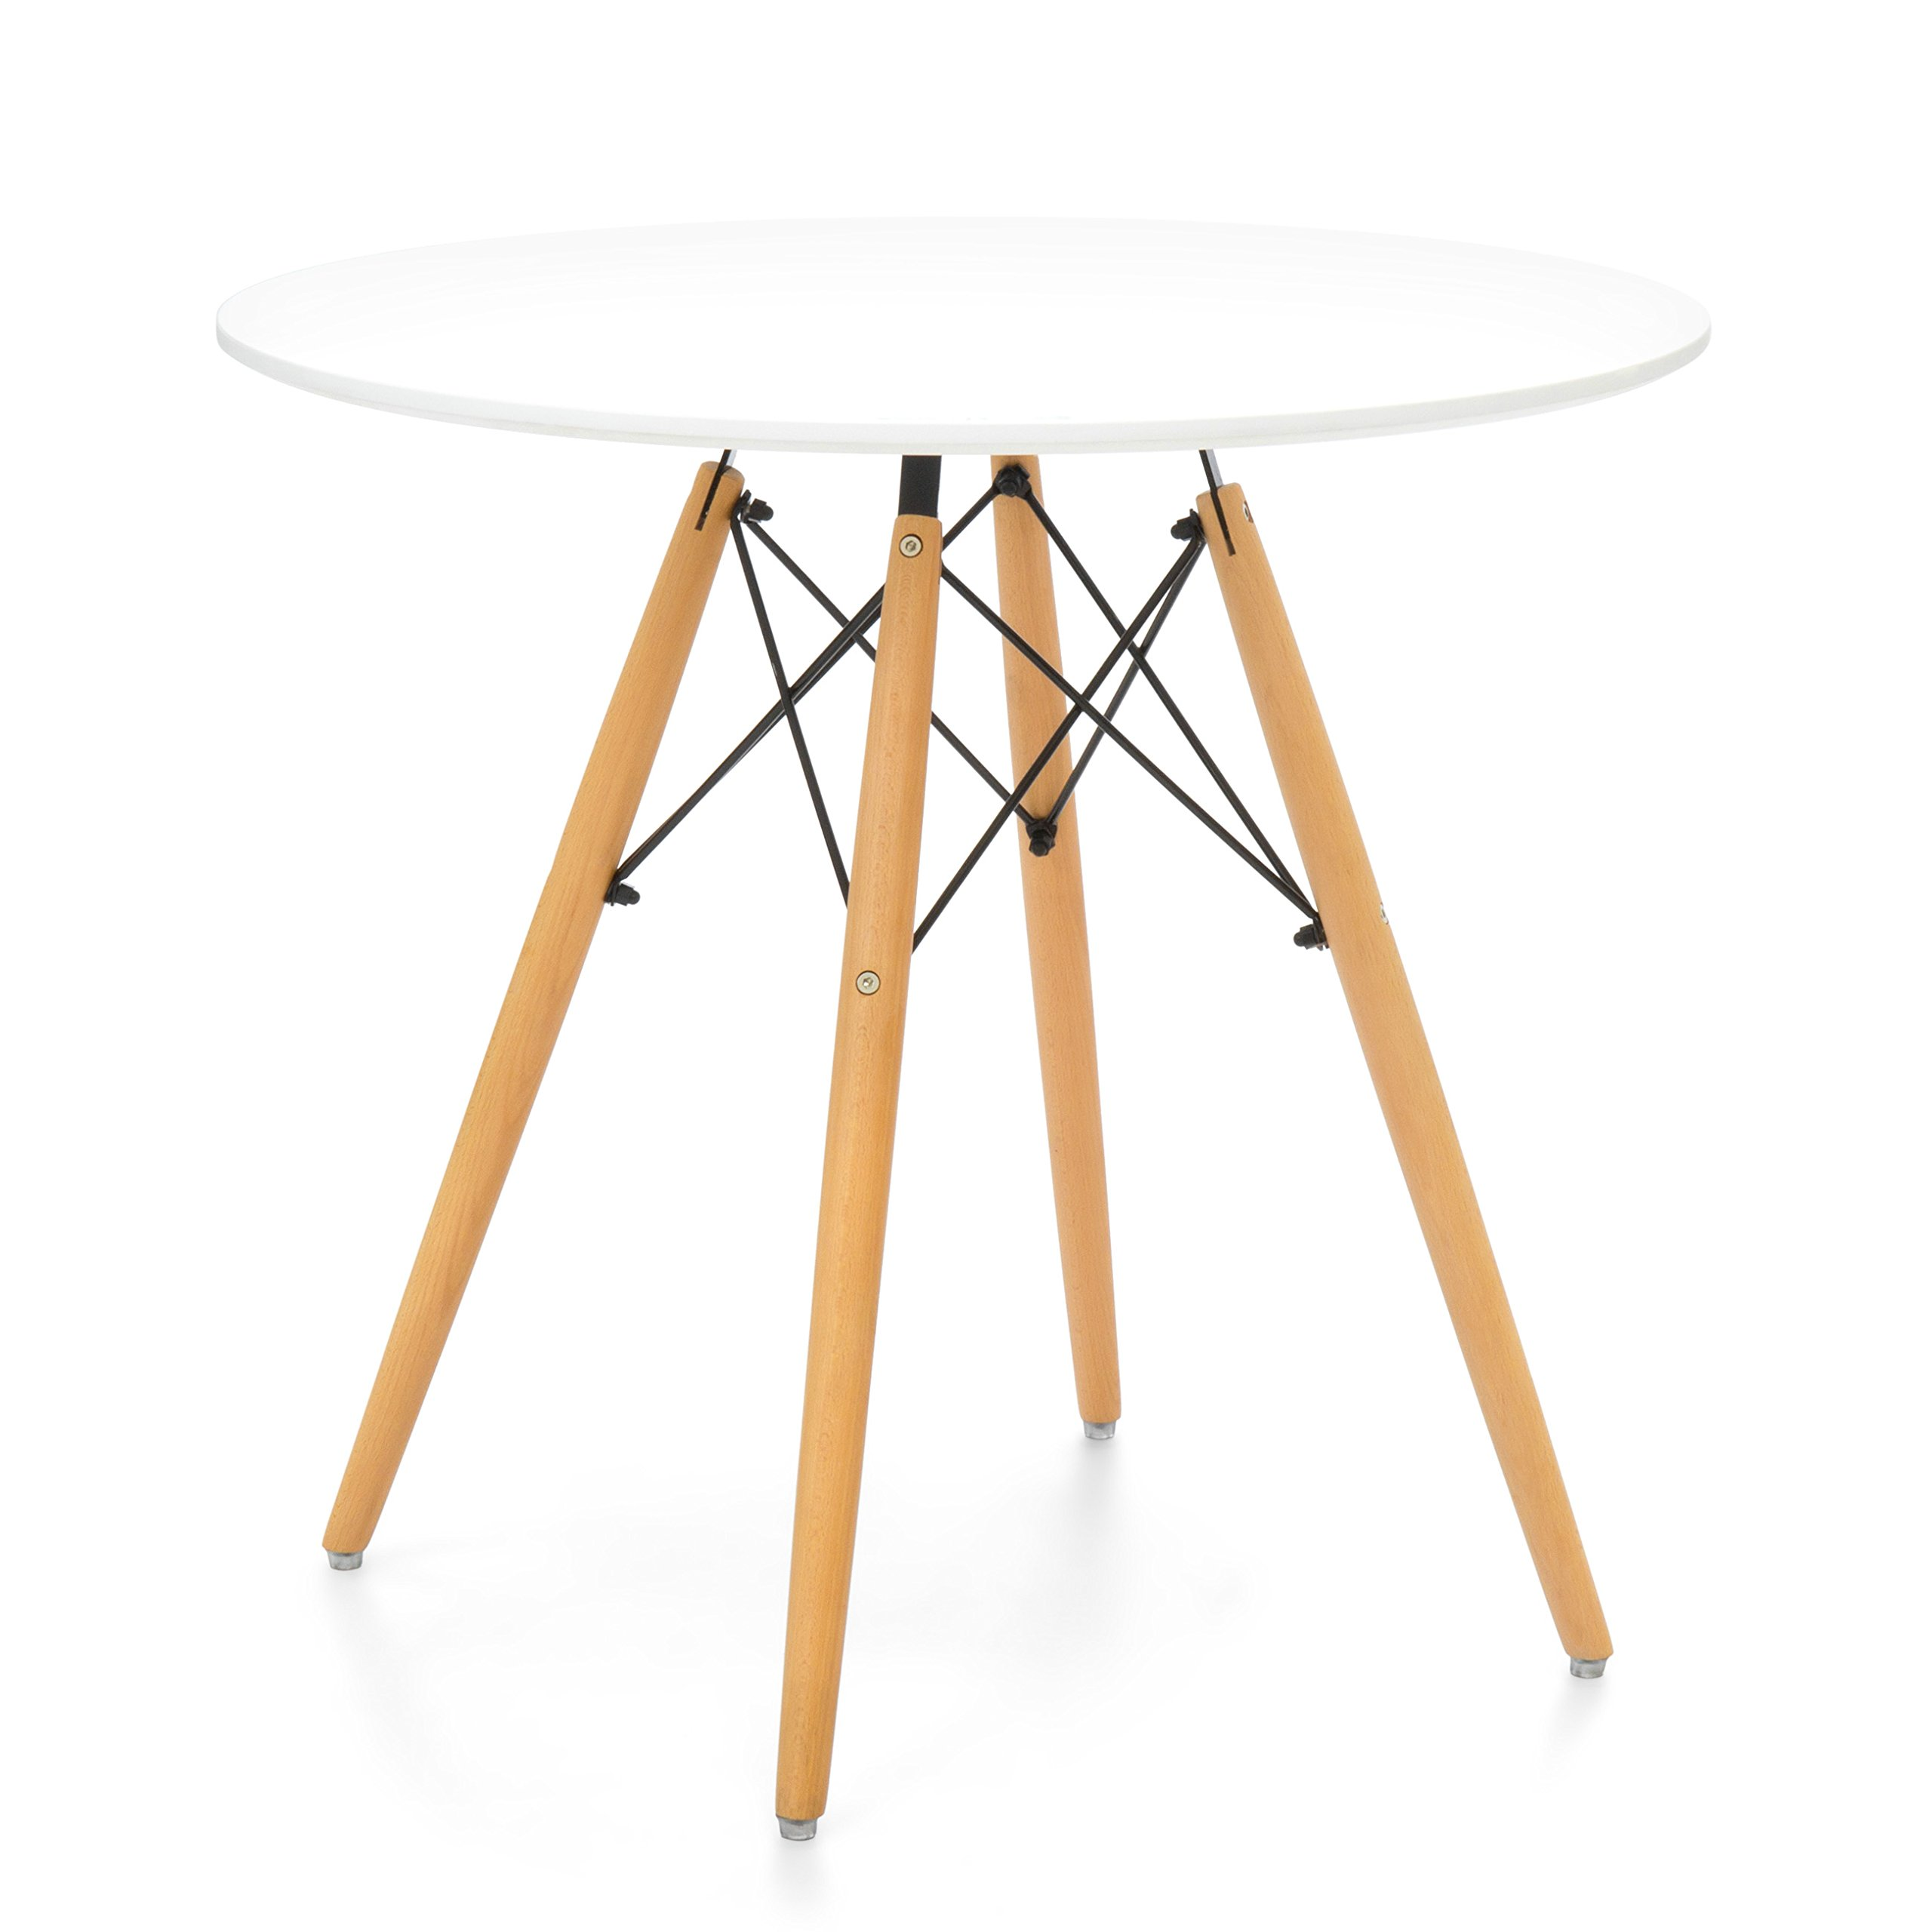 Best Choice Products Mid Century Modern Eames Style Round Dining Table w/Wood Legs and White Tabletop